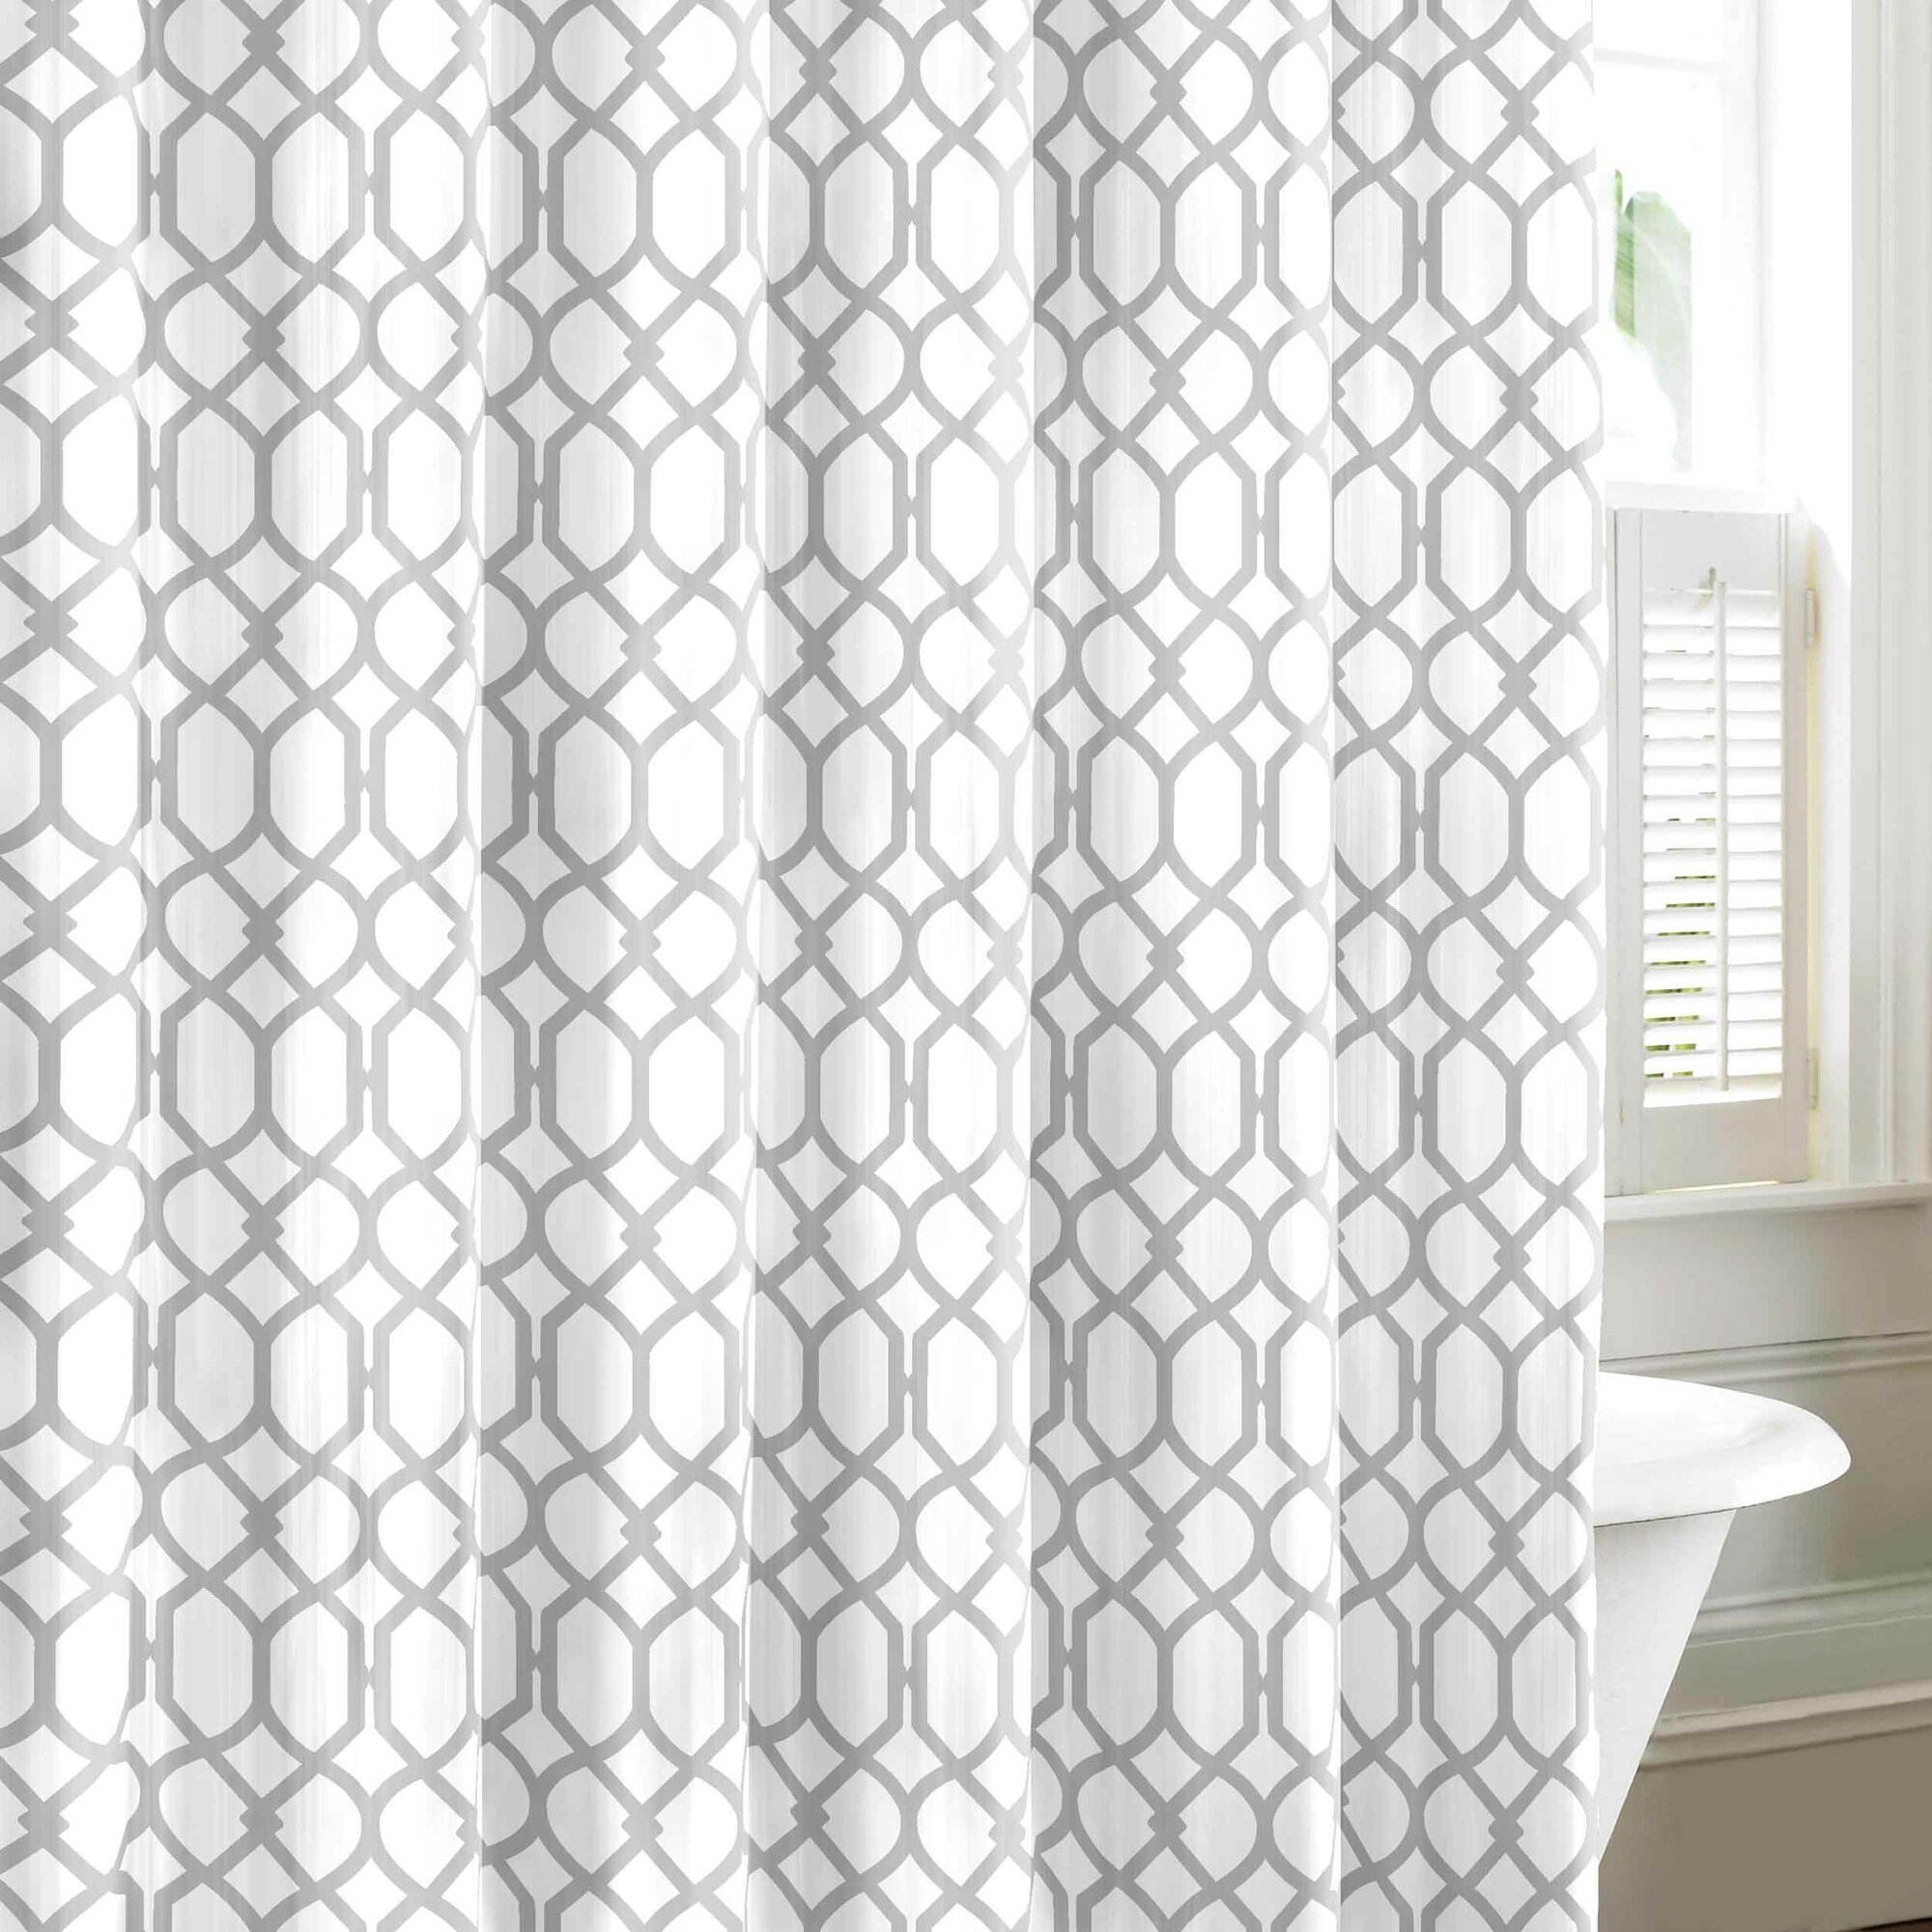 Bamboo shower curtain - Shoreline Trellis Cotton Shower Curtain By Tommy Bahama Bedding